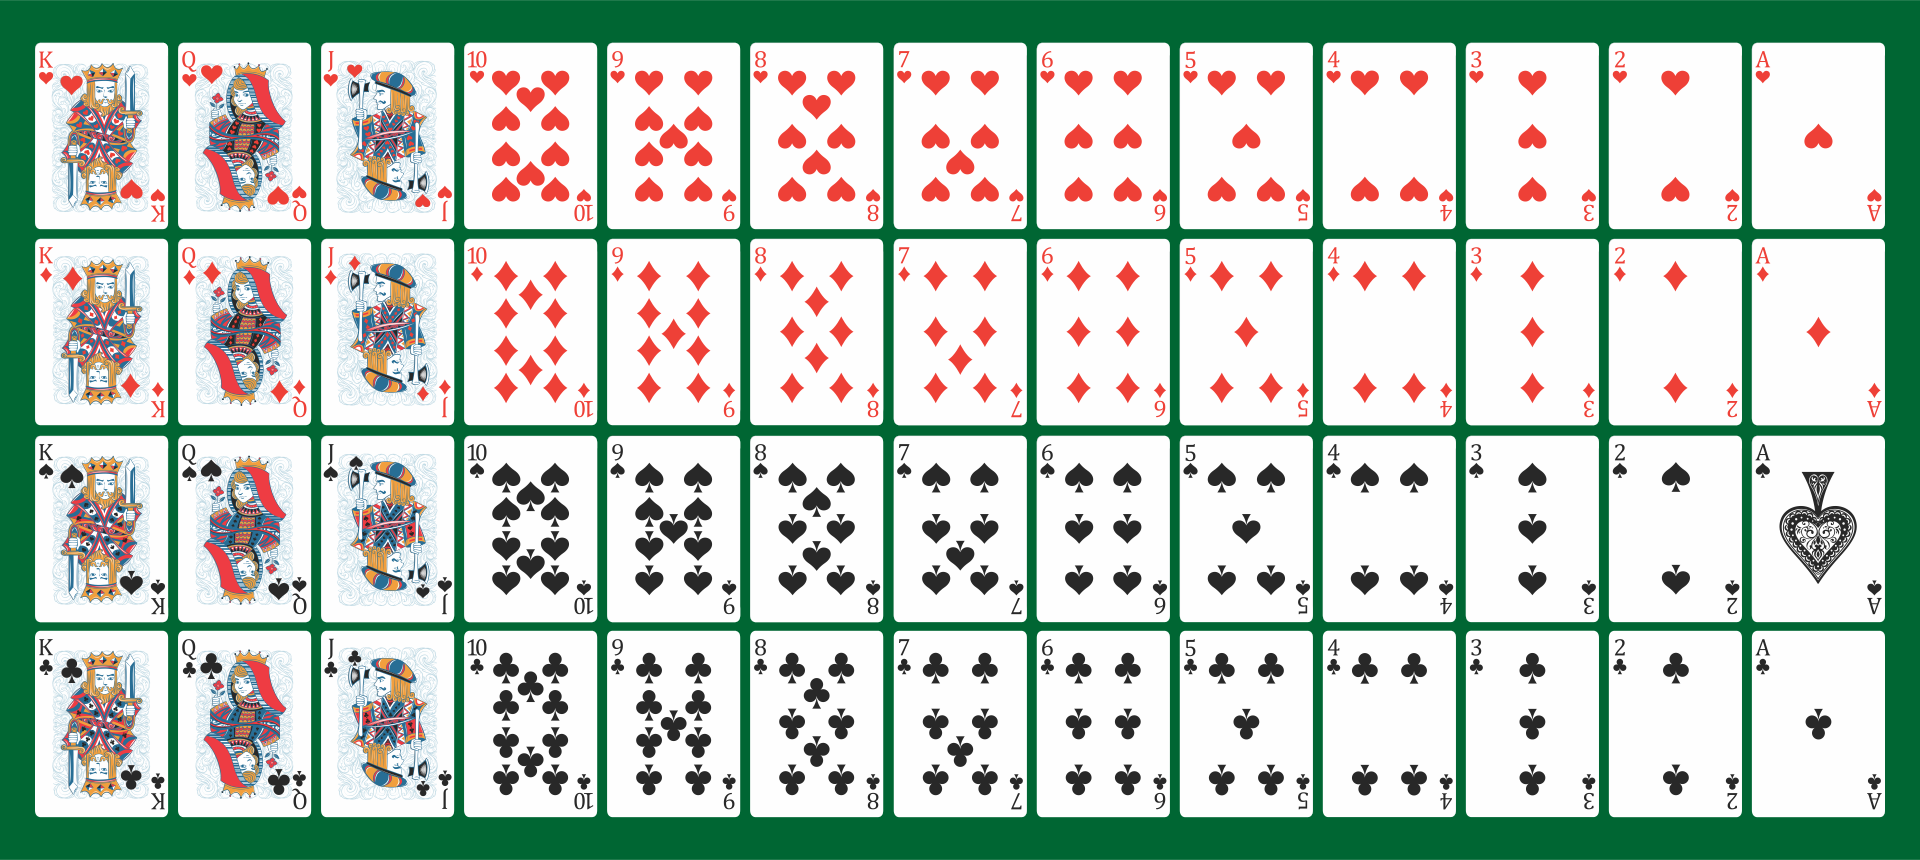 52 playing cards images download